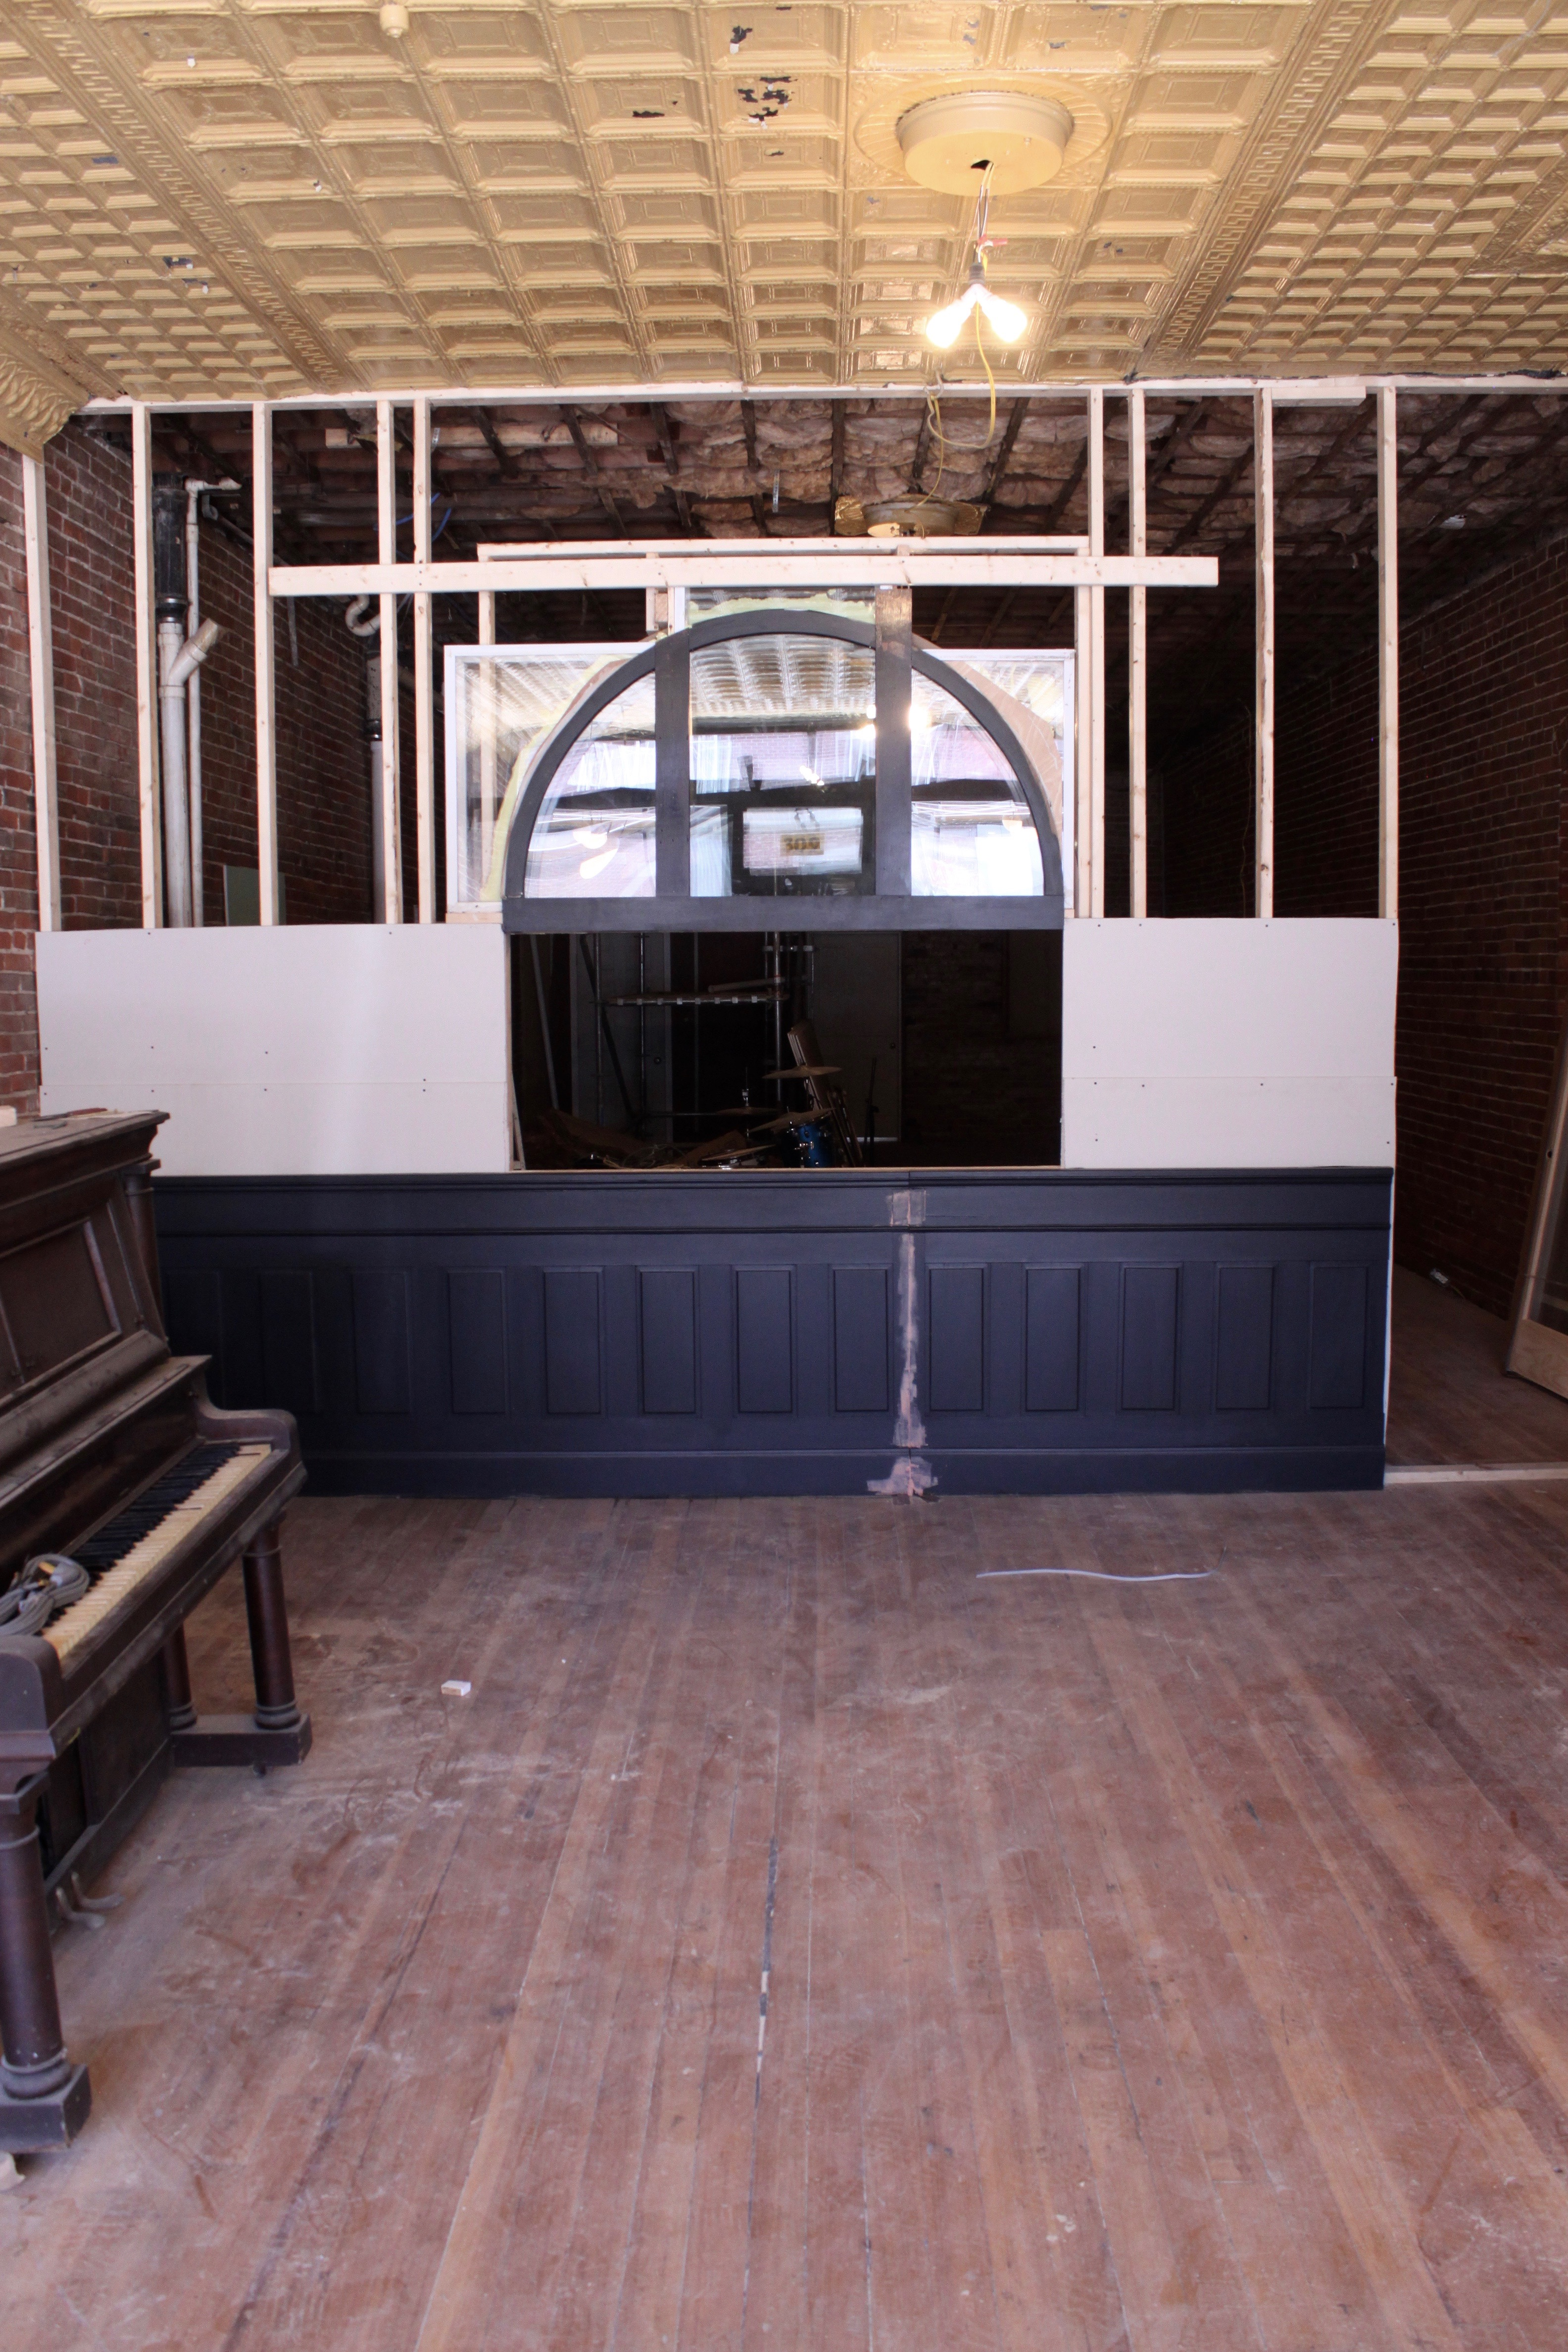 In The Rough Framing, The Window Sits Above Some Beautiful Room Divider  Panels Donated By Local Neon Sign Maker Jeff Dunn. The Piece Was In His  Familyu0027s Law ...